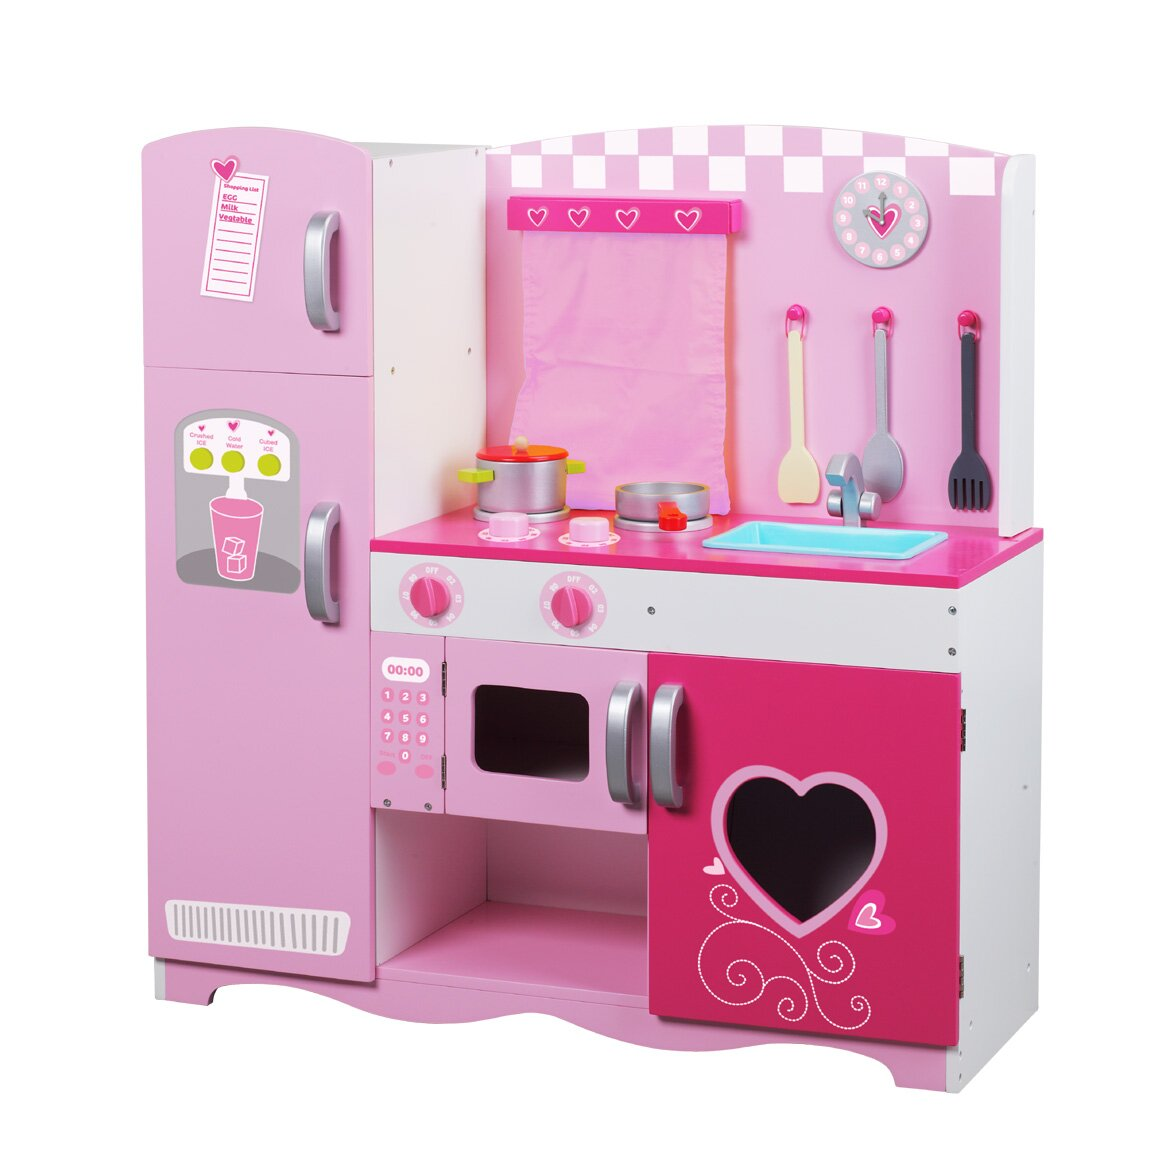 Classic toy wooden kitchen set reviews wayfair for Toy kitchen set